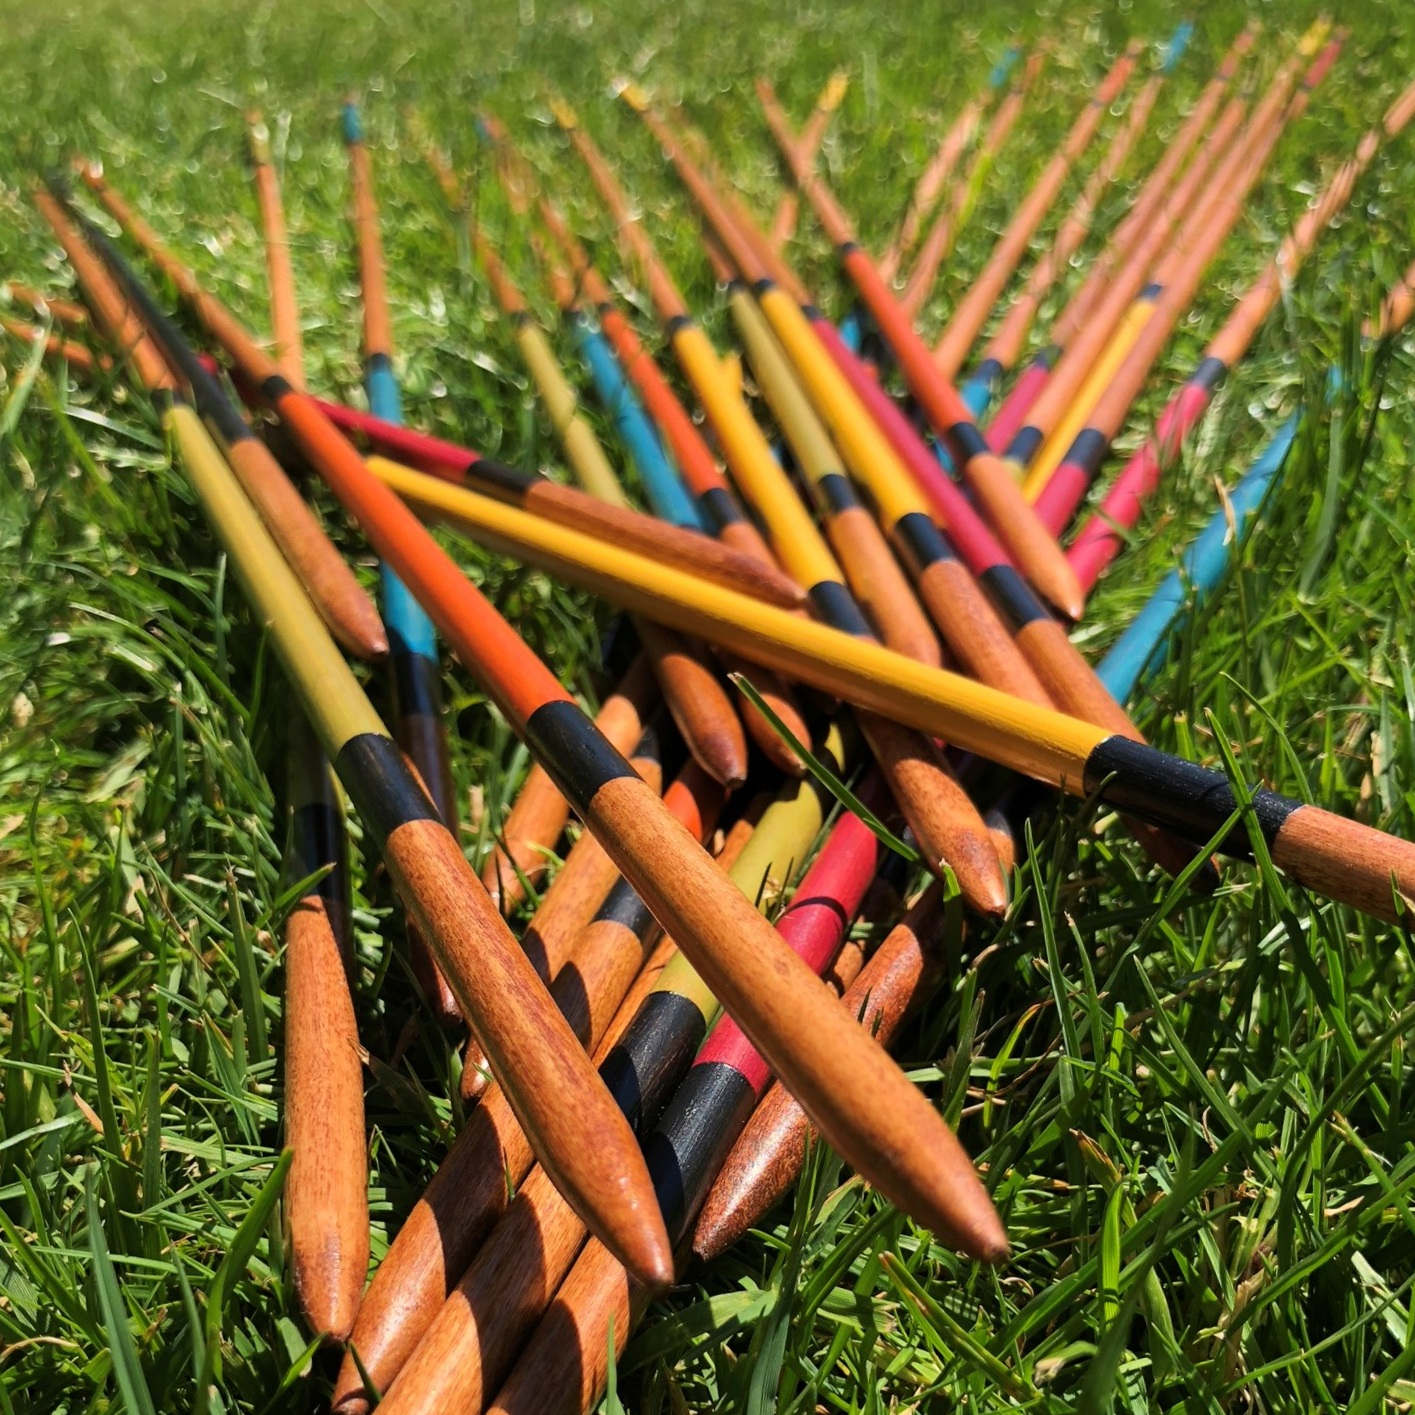 Pick-up sticks - + more info